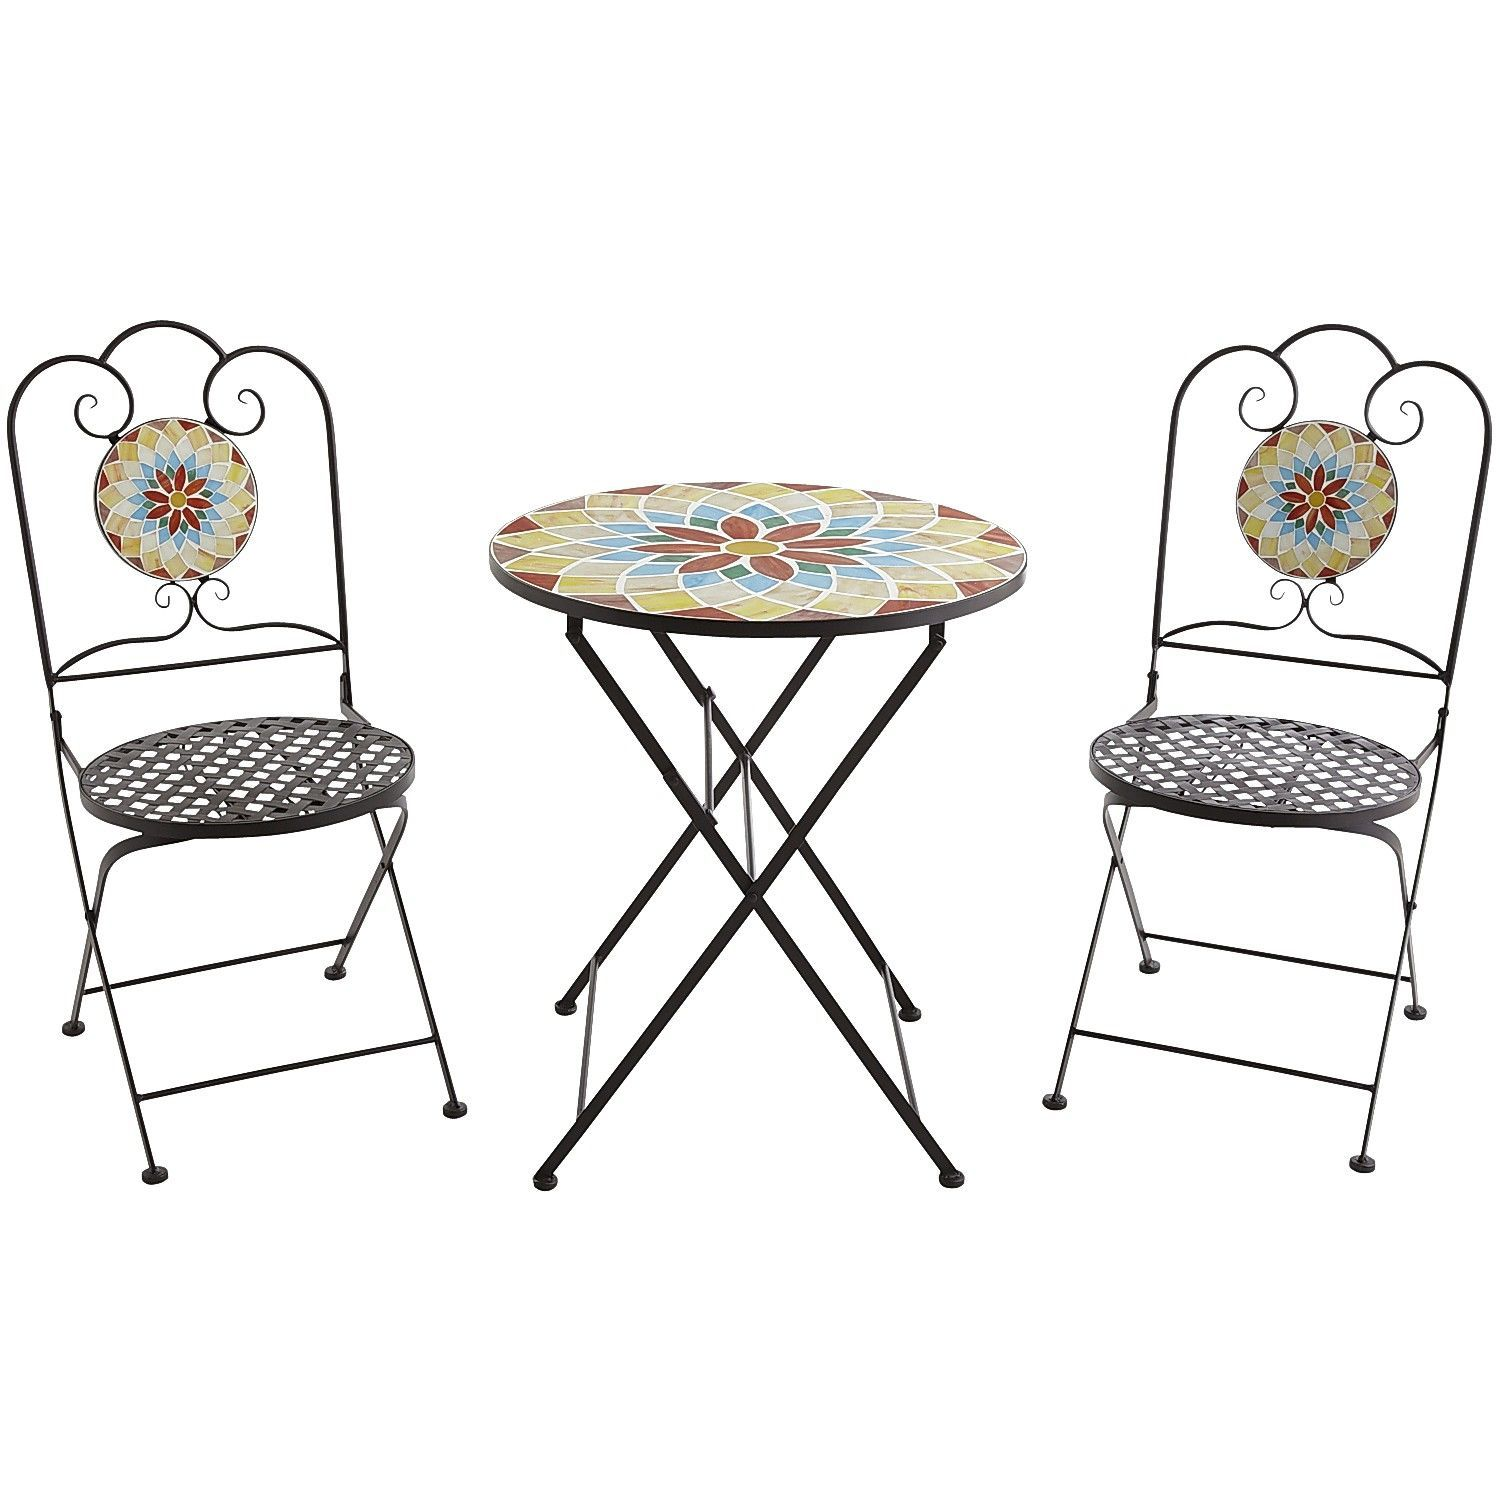 Madeira Bistro Set Pier 1 Imports Outdoor Patio Decor Bistro